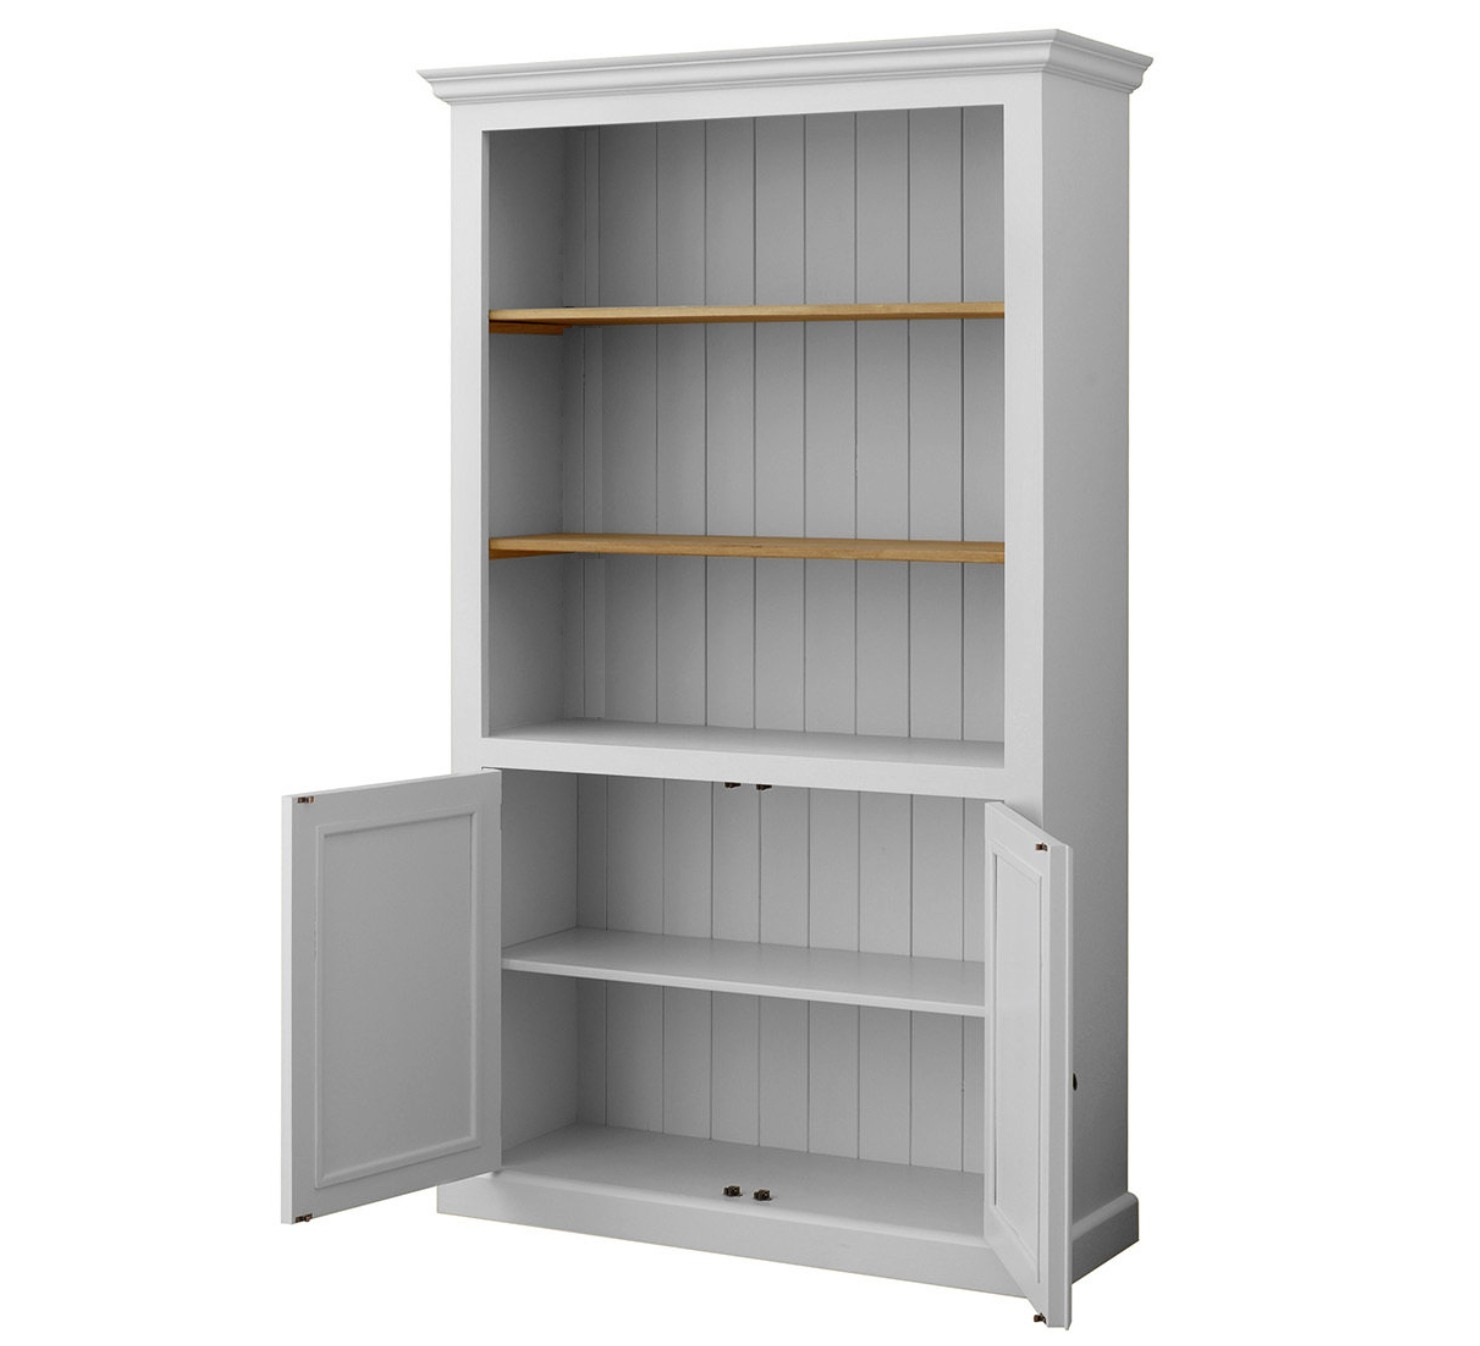 Mottisfont Solid Pine Painted 2 Door Open Bookcase In 3 Sizes Intended For Cupboard Bookcase (#7 of 15)